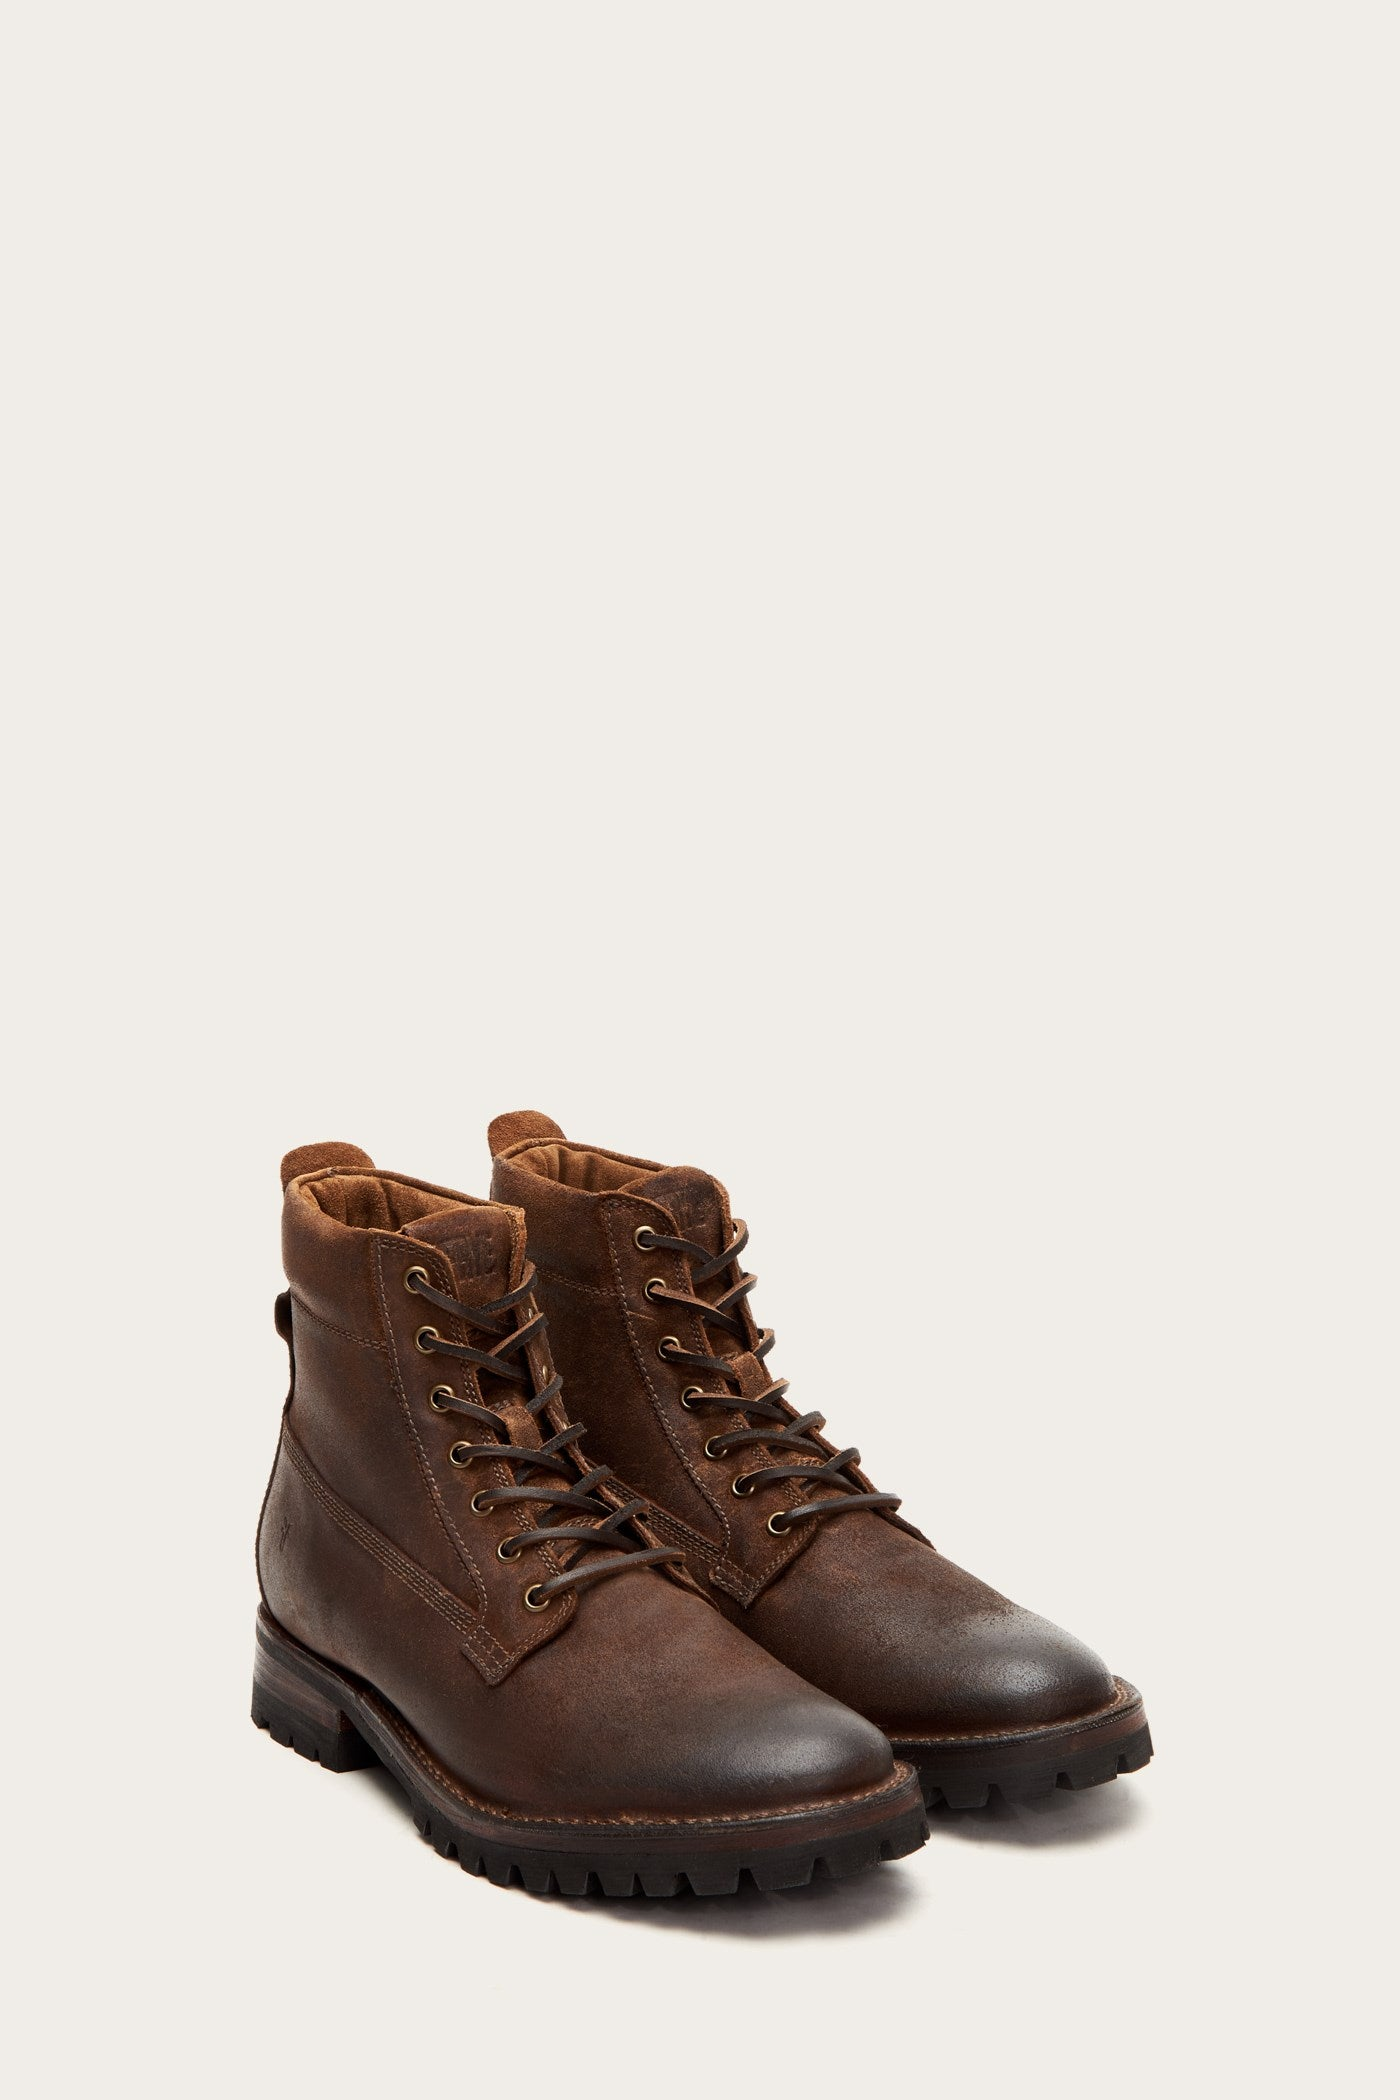 FRYE Union Workboots